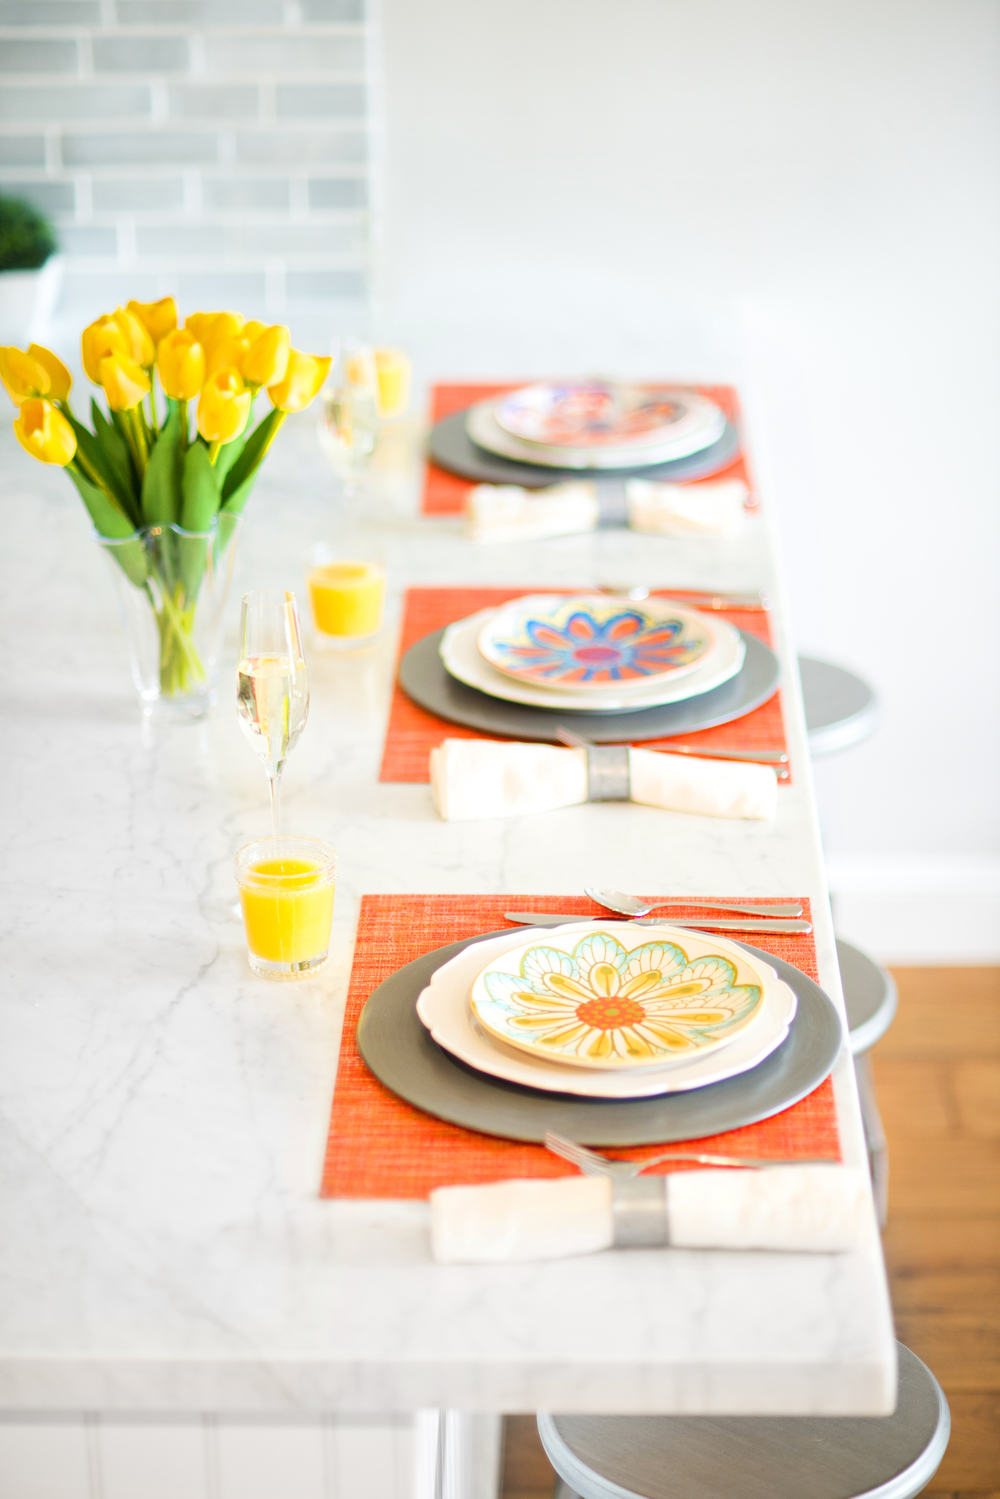 Sun-Kissed Spring Breakfast~ Turn your bar into a delightful table setting for the season!